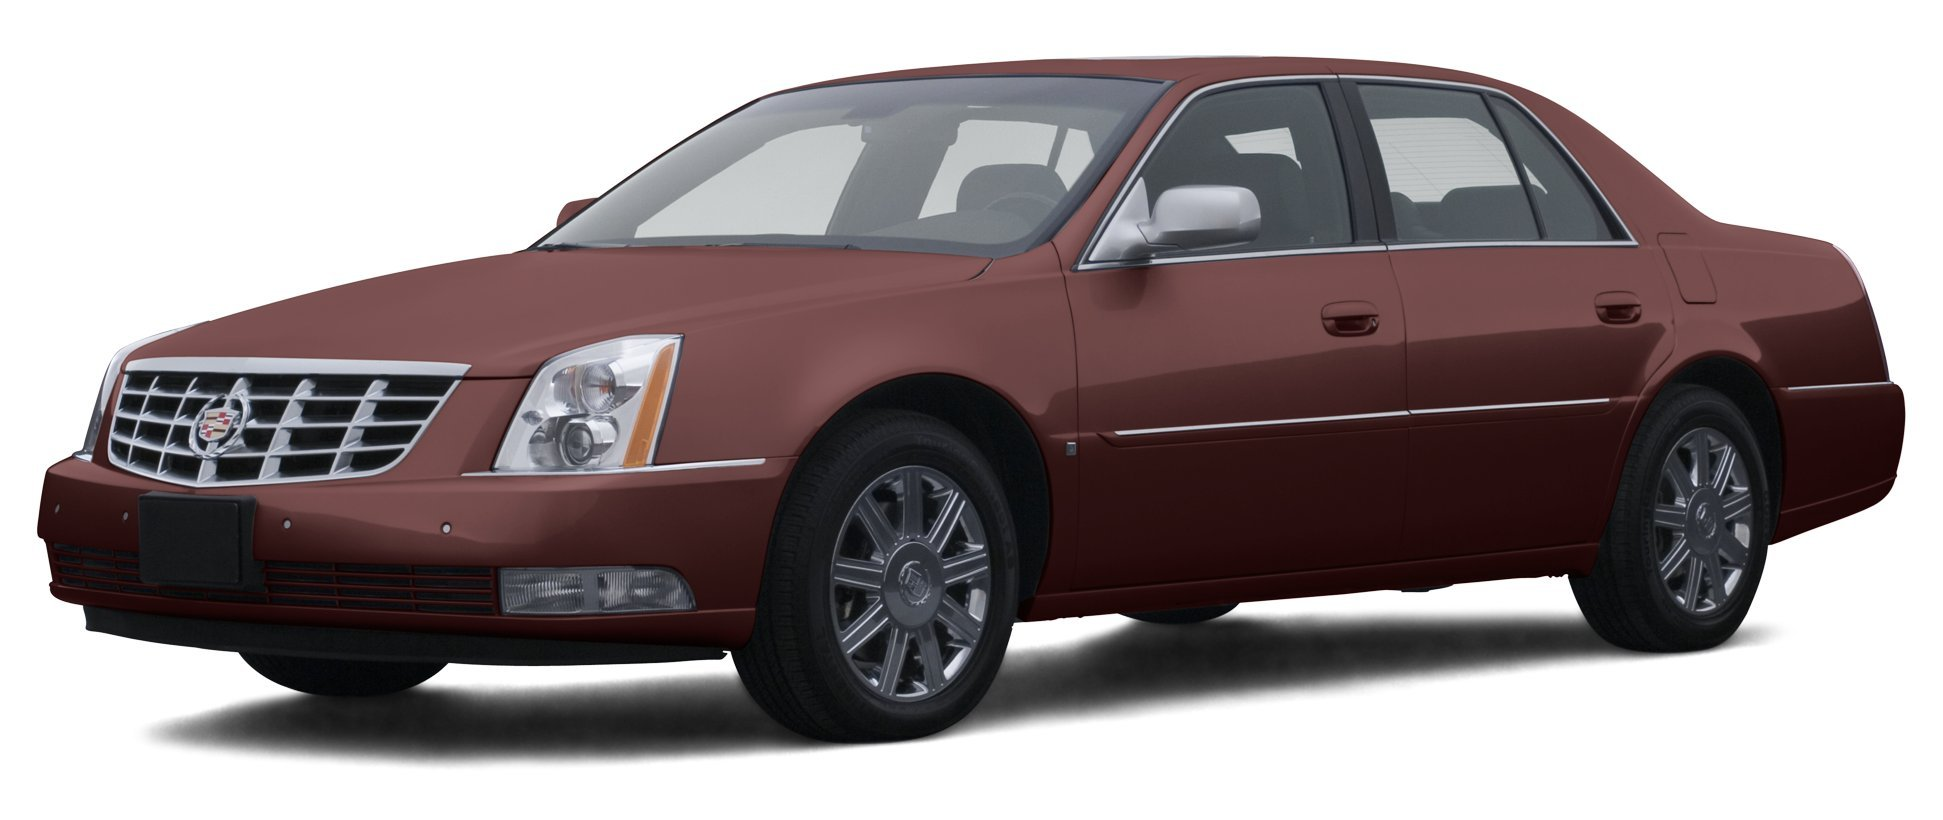 2007 Cadillac Dts Reviews Images And Specs Vehicles 1954 Sedan Deville Luxury I 4 Door